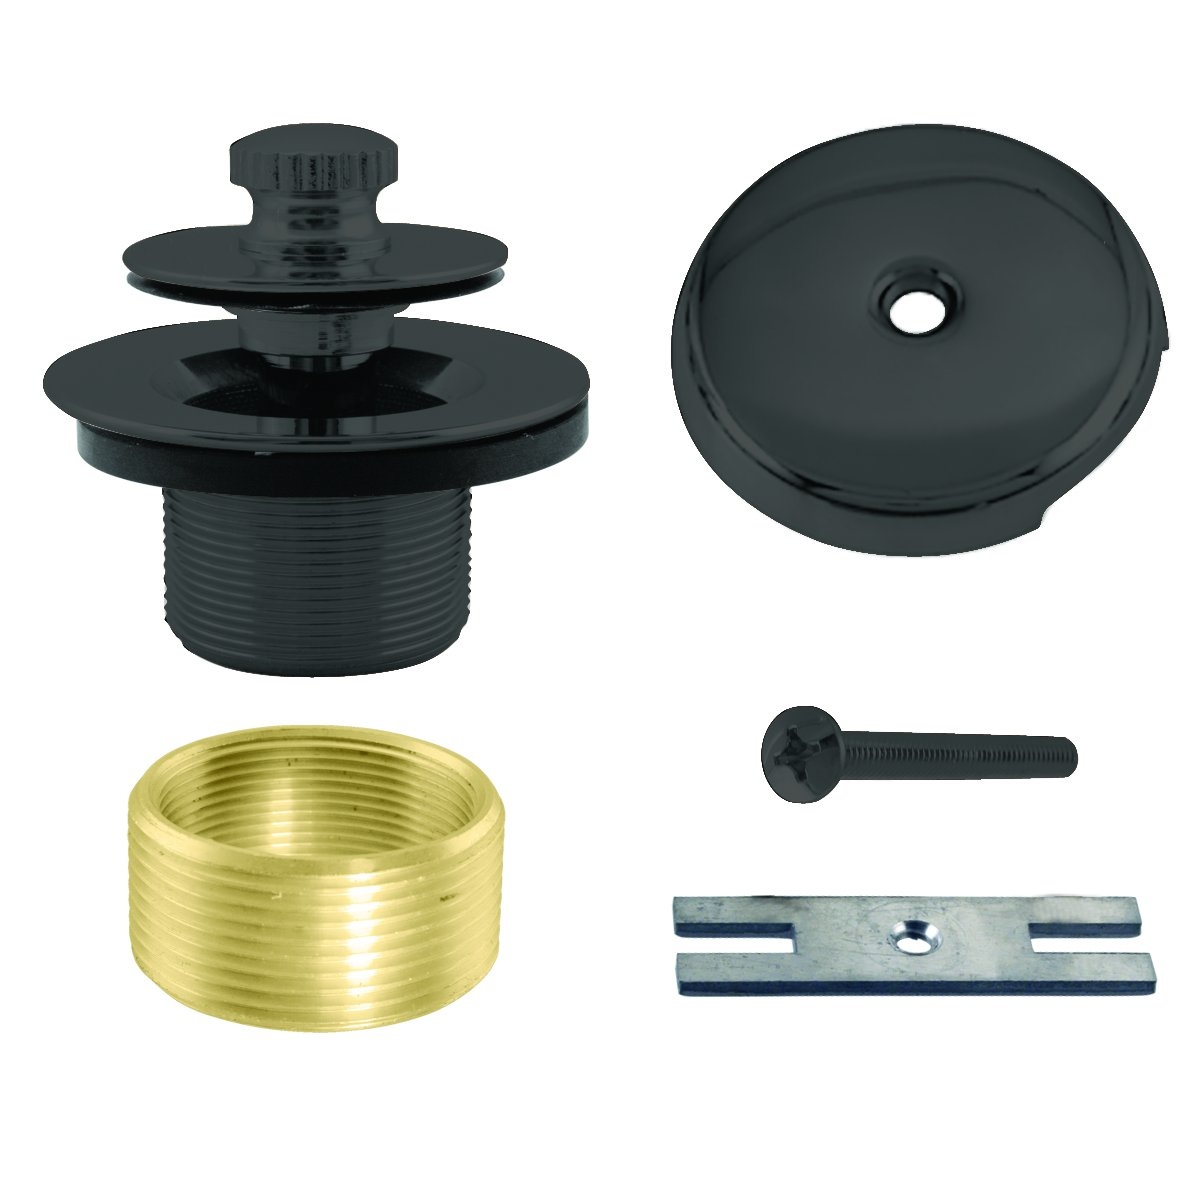 Westbrass Twist & Close Universal Tub Trim with One-Hole Faceplate, Matte Black, D941K-62